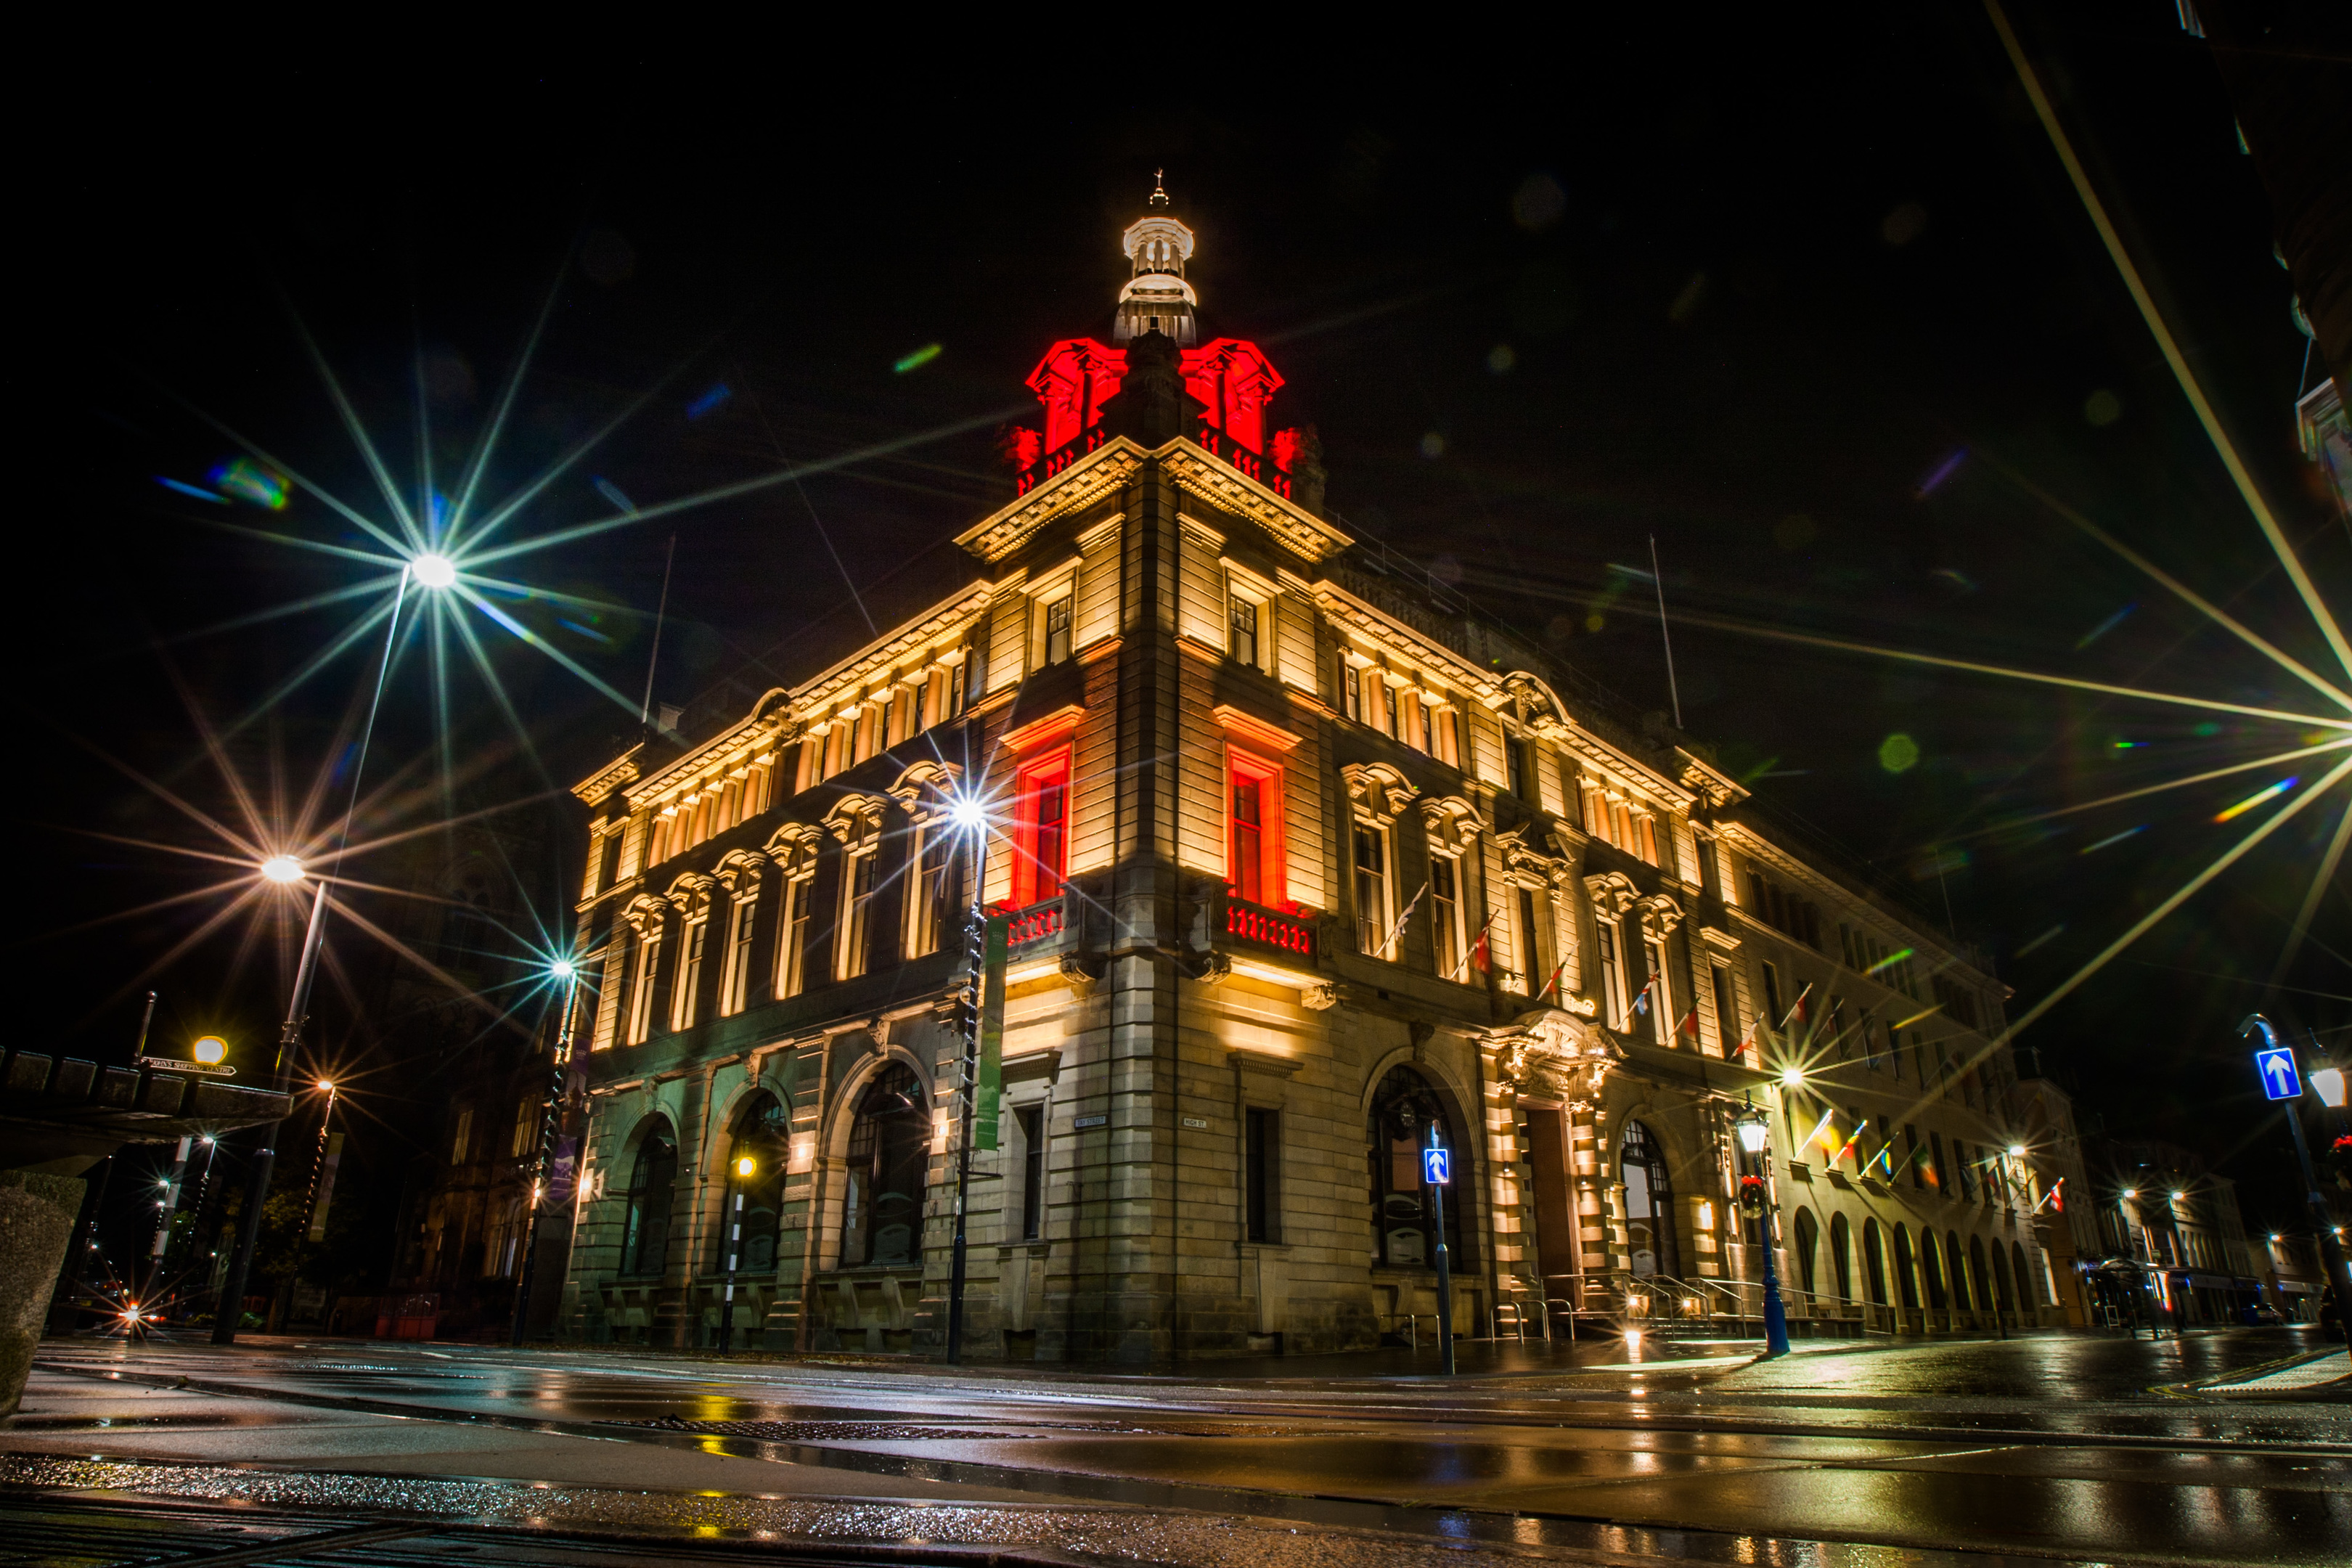 The council building at 2 High Street can now be lit up at night